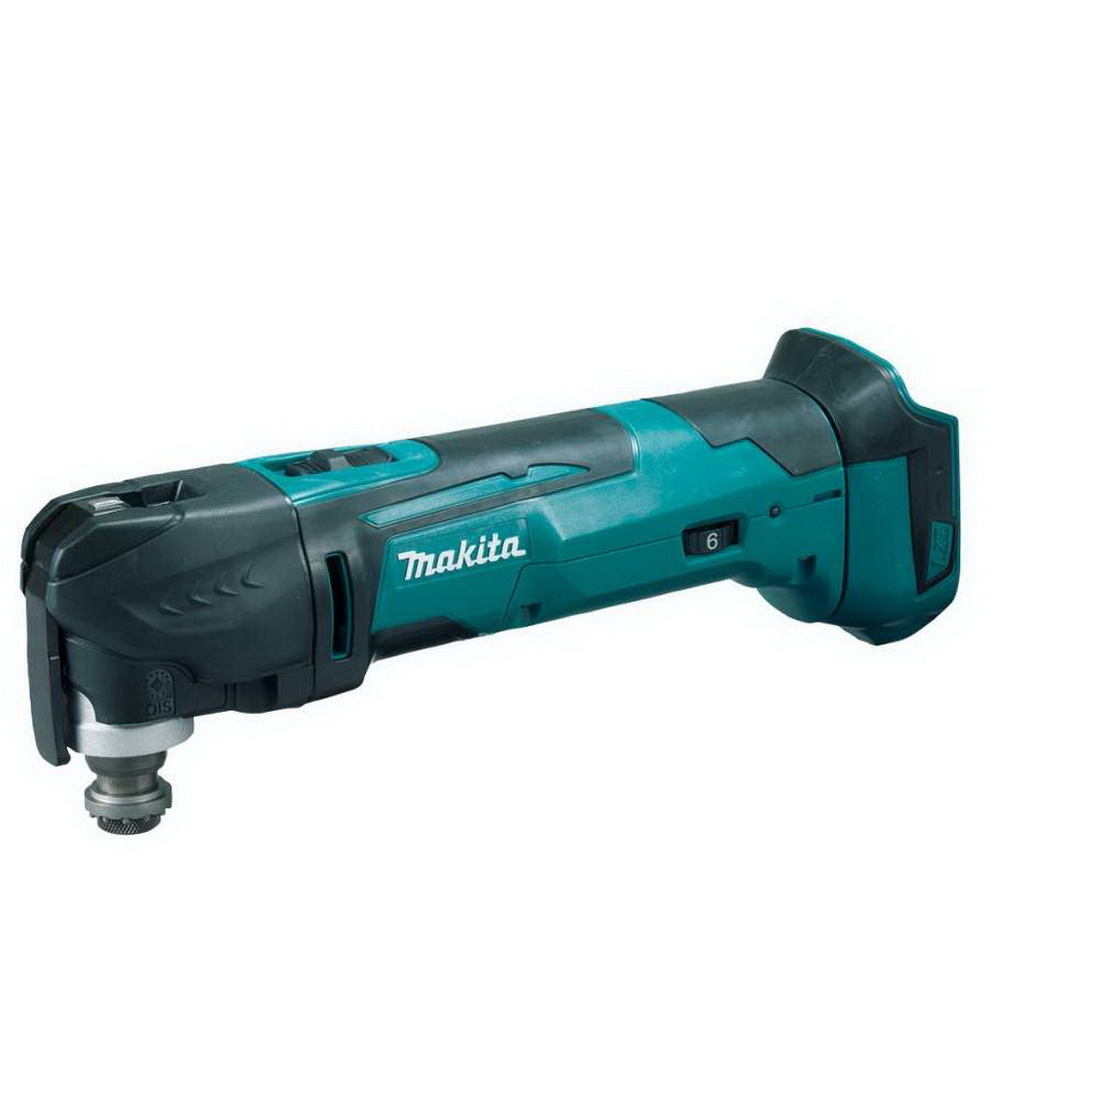 18V 326mm Cordless Multi-Skin